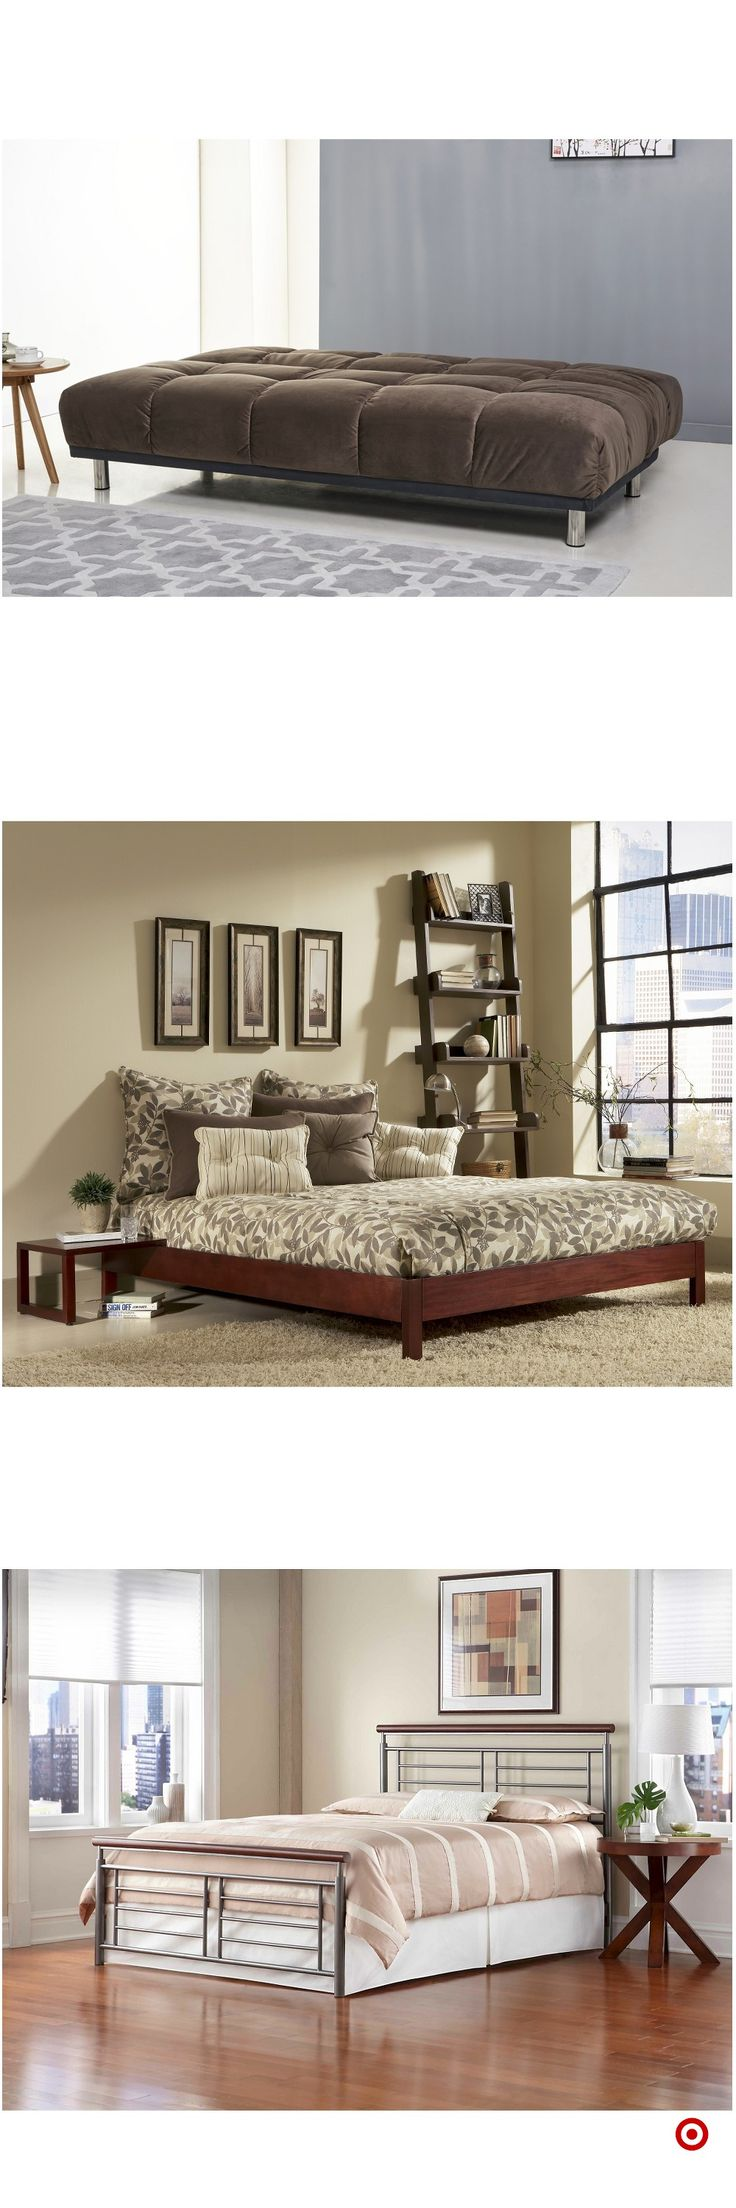 this have bedroo bedroom asli spruce top furniture white bed are little clean all sheets along love from a i fieldcrest always target mama personally associate co places up aetherair with